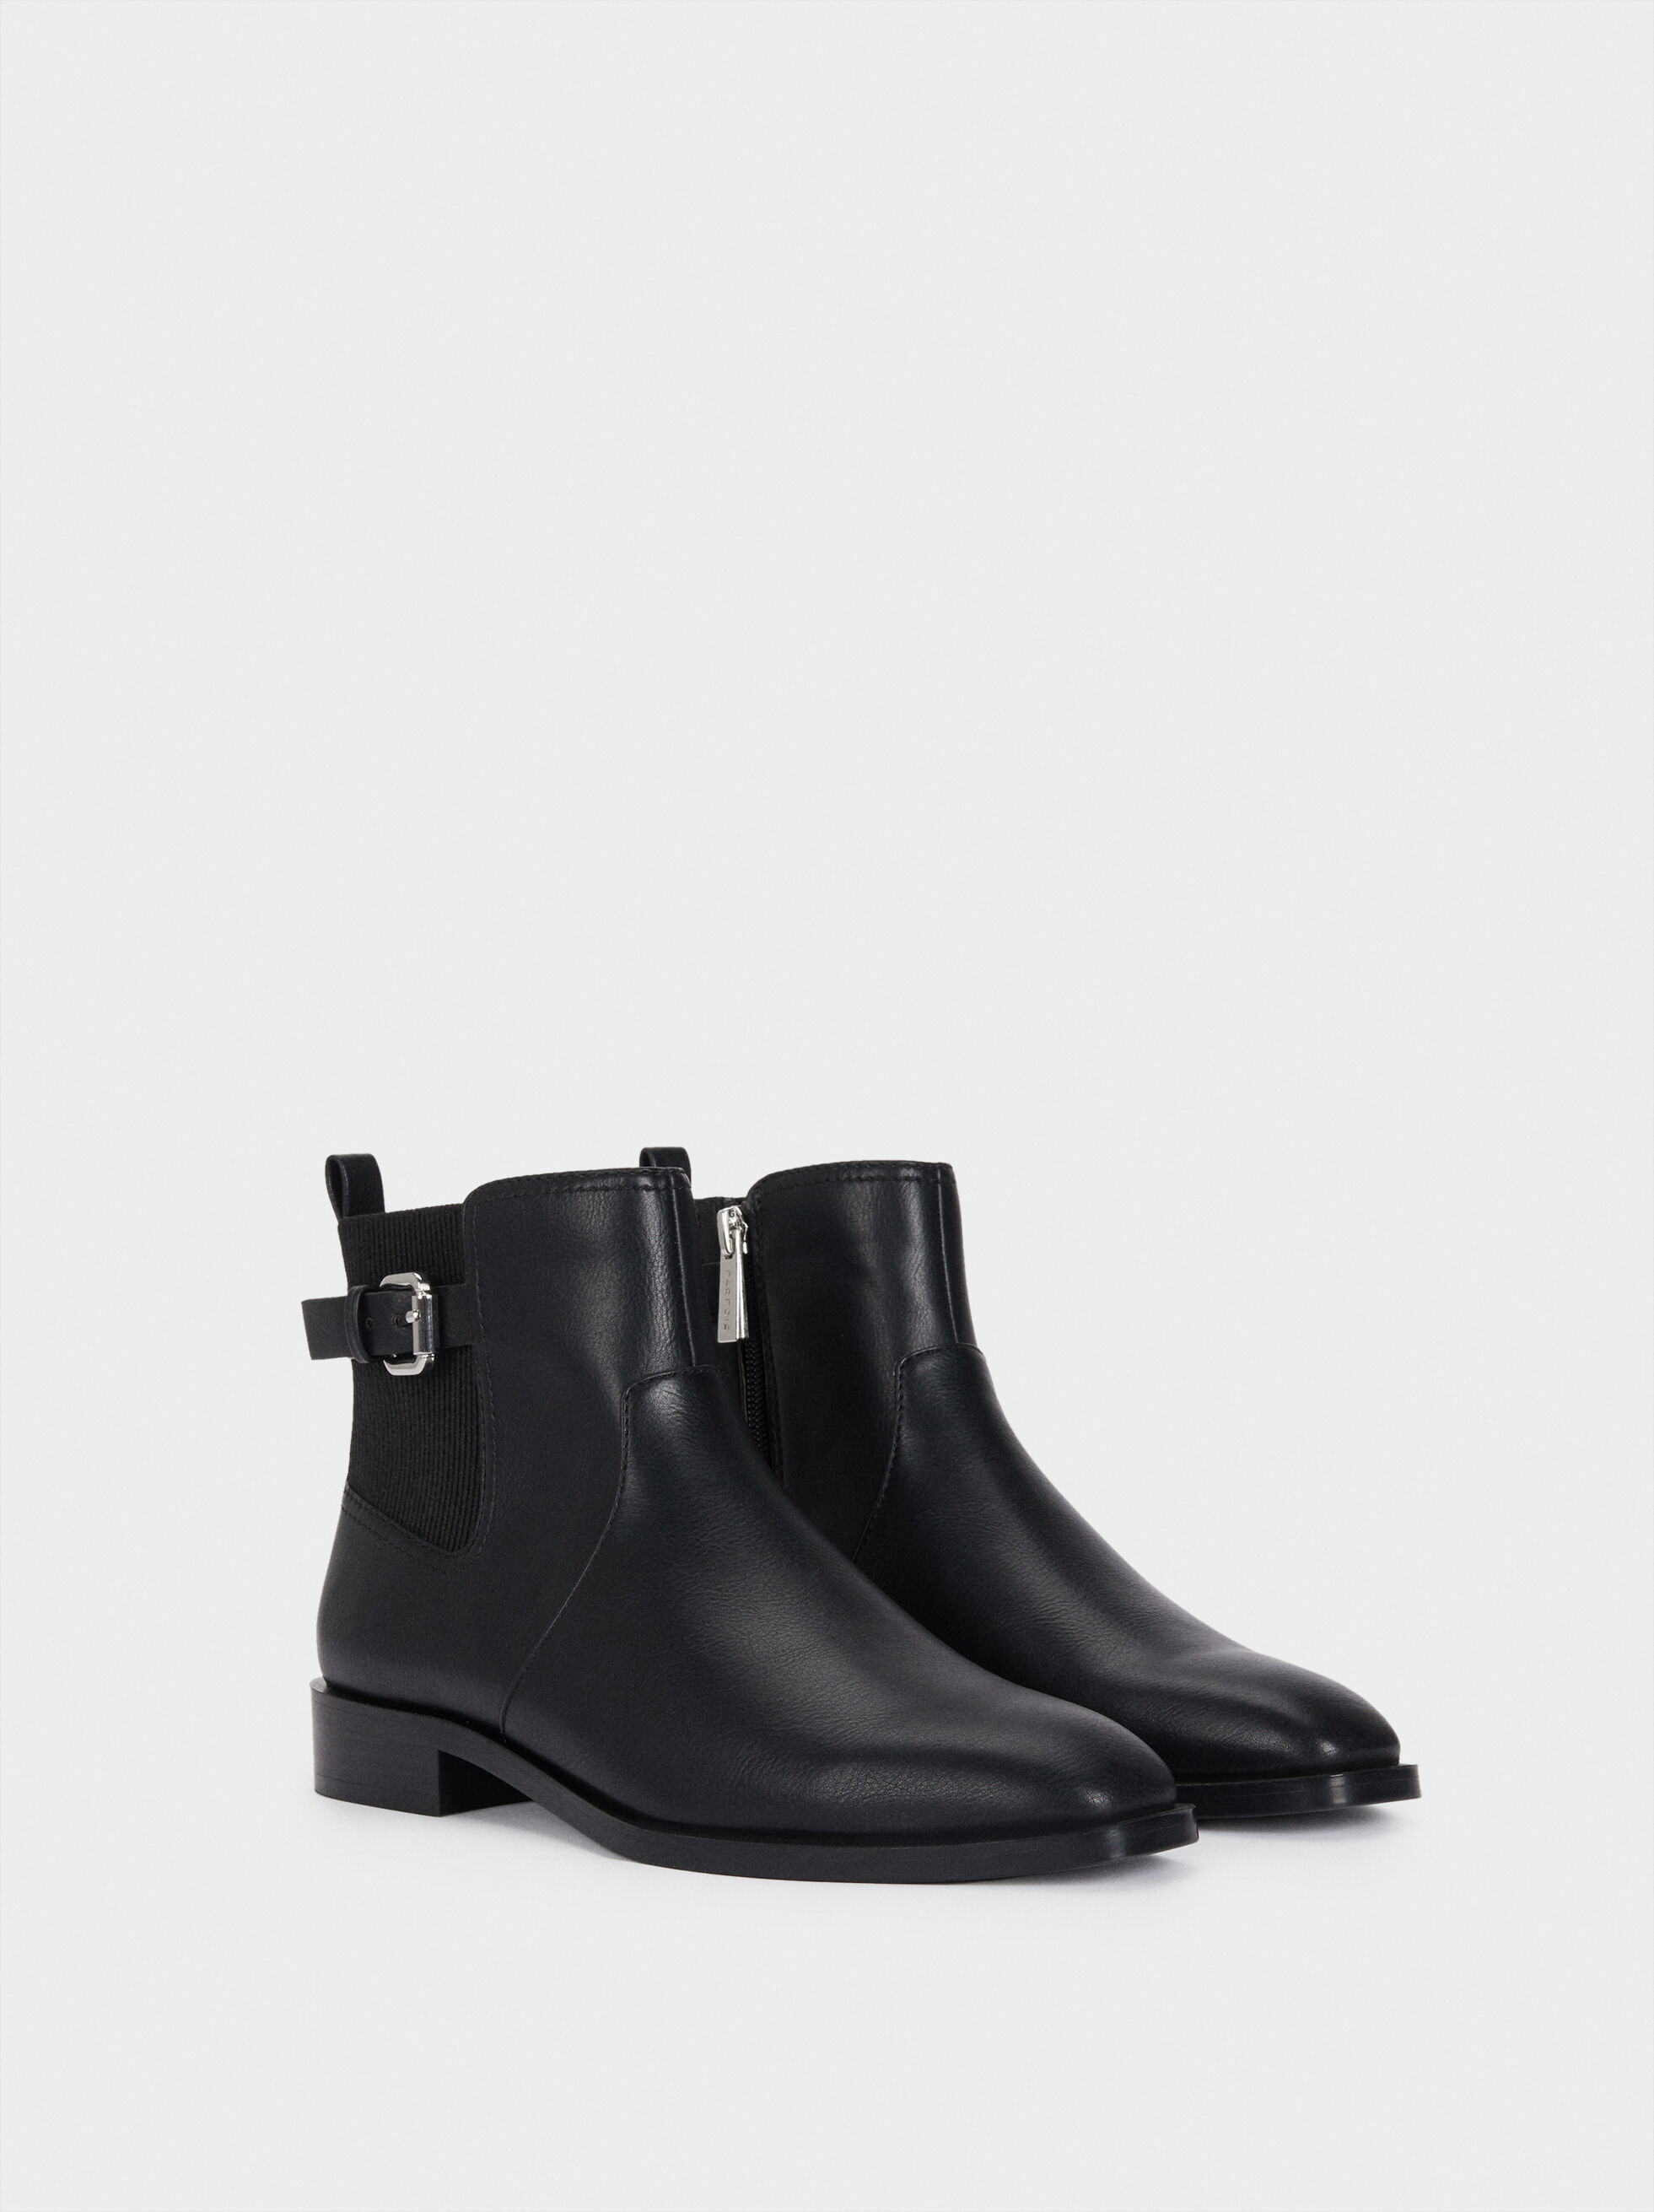 Flat Ankle Boots With Buckle Detail